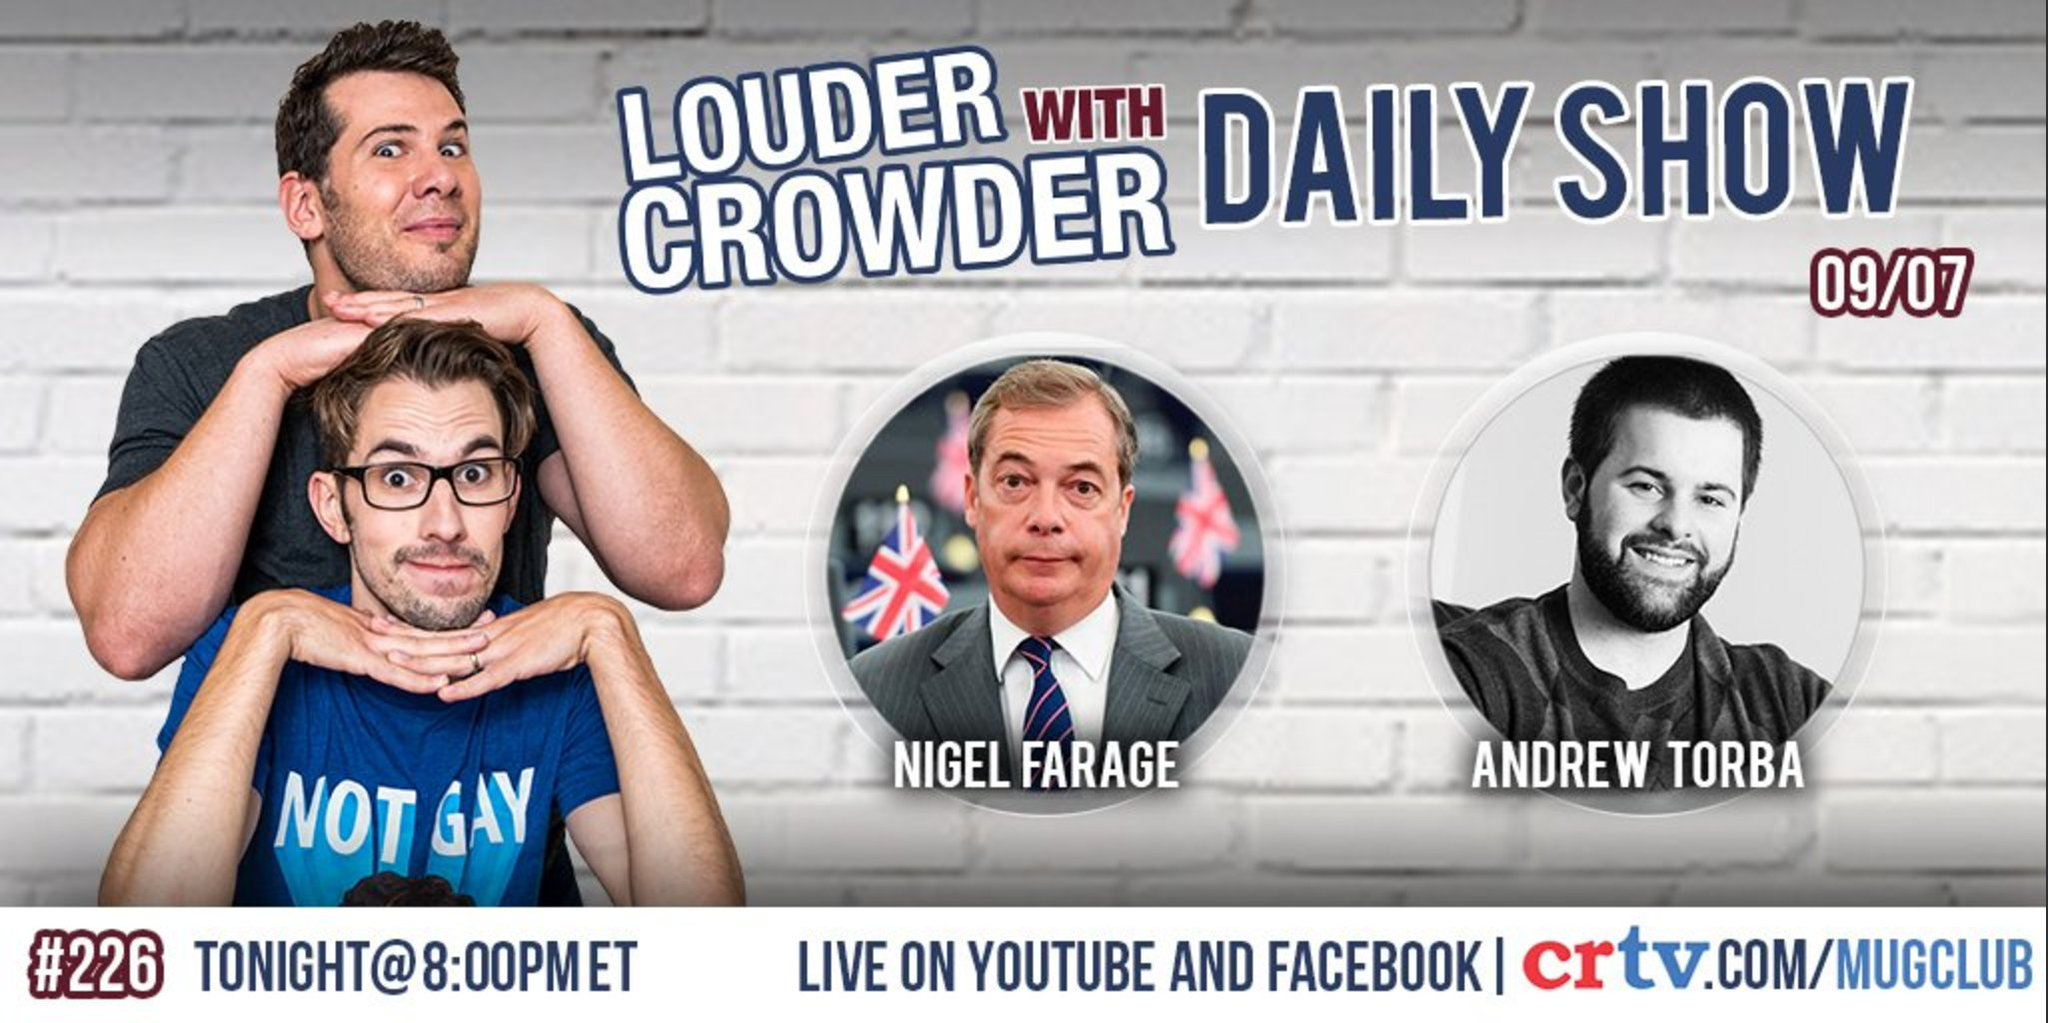 Catch me speaking to @scrowder on #LwC tonight. He's a top man. https://t.co/Ok2KFa3uNz